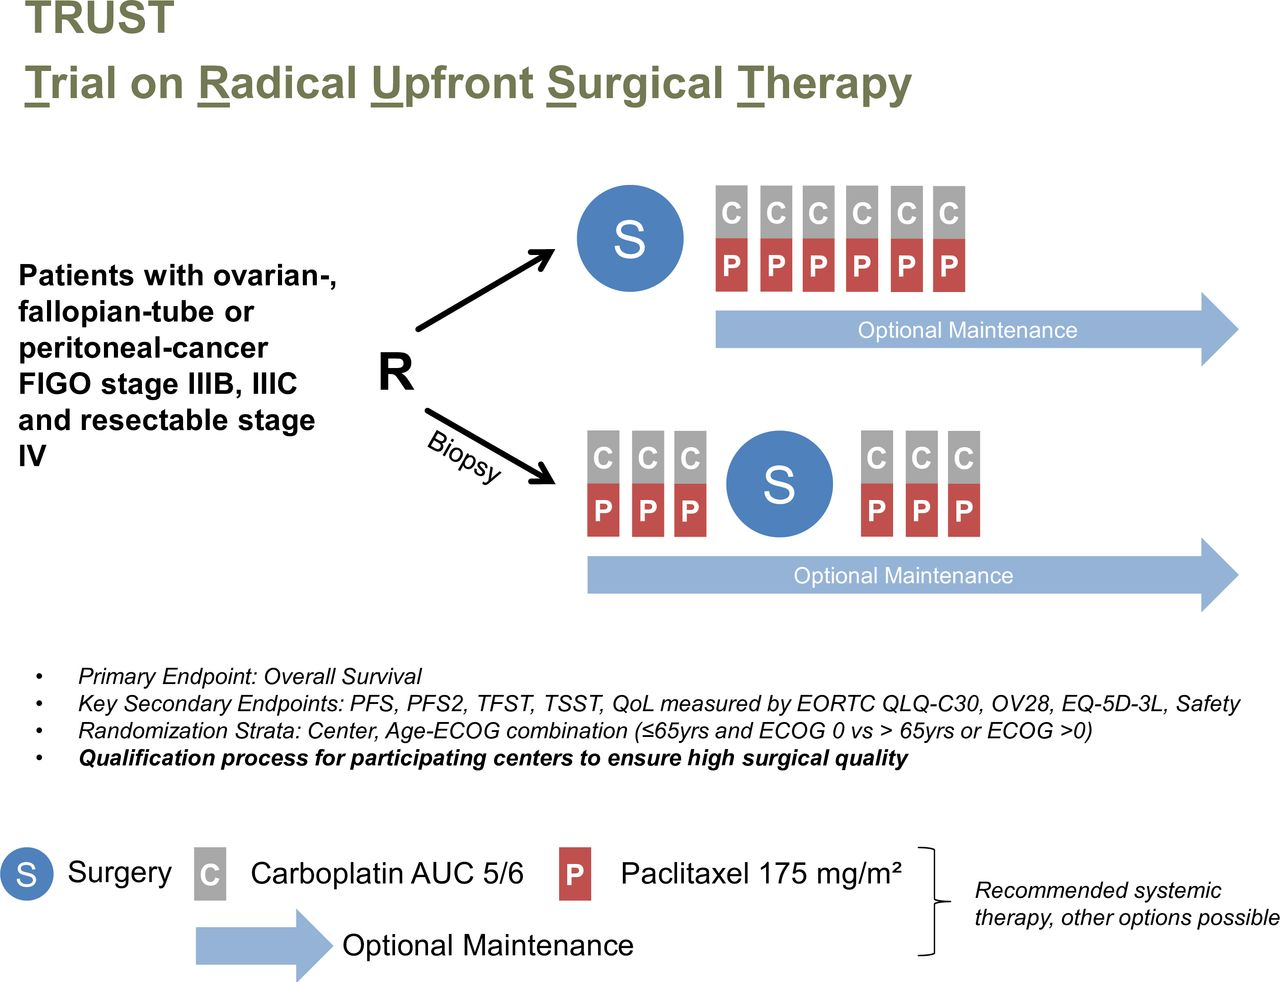 Trust Trial Of Radical Upfront Surgical Therapy In Advanced Ovarian Cancer Engot Ov33 Ago Ovar Op7 International Journal Of Gynecologic Cancer